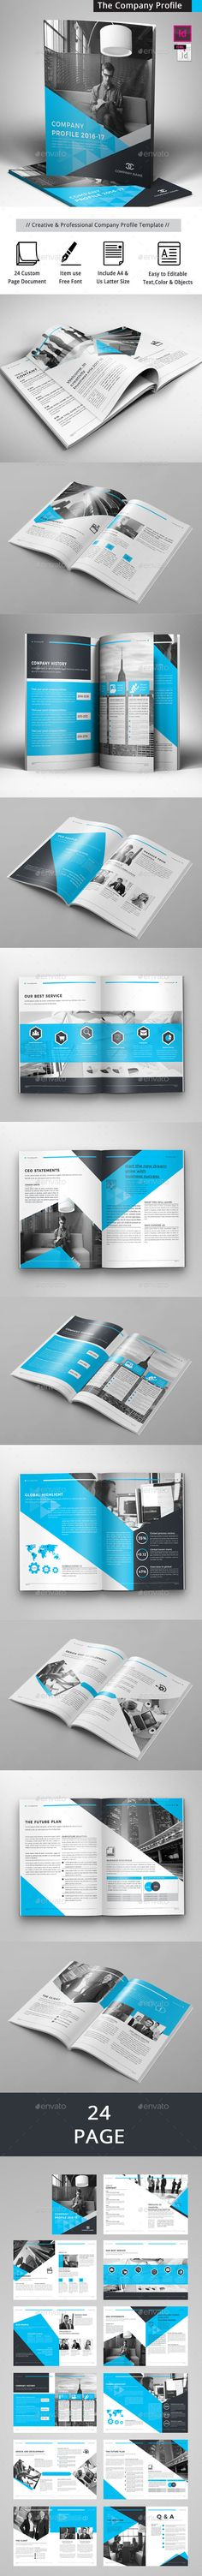 The Company Profile  — InDesign Template #brochure template #proposal • Download ➝ https://graphicriver.net/item/the-company-profile/18330923?ref=pxcr